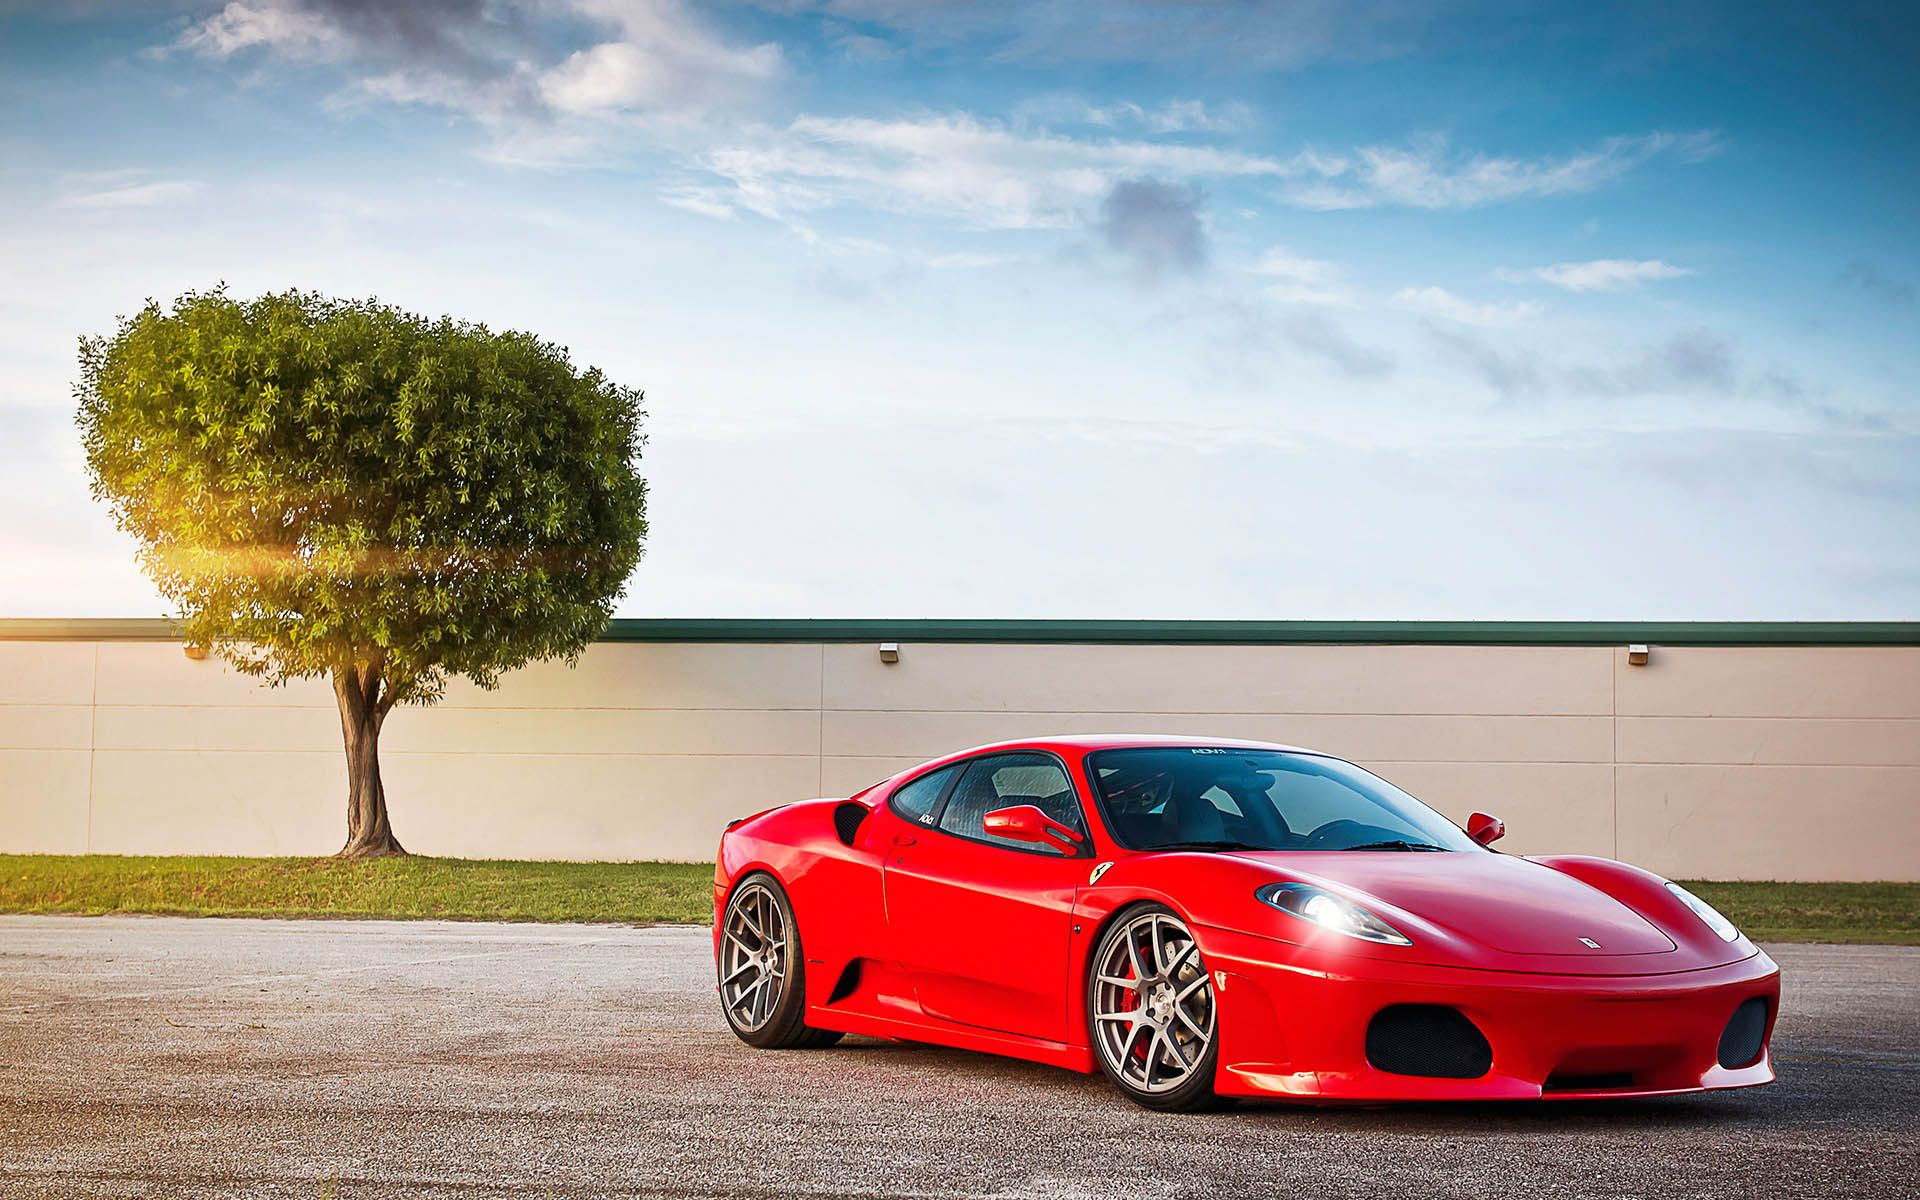 Lovely Ferrari Scuderia Chrome HD Desktop Wallpaper Widescreen High